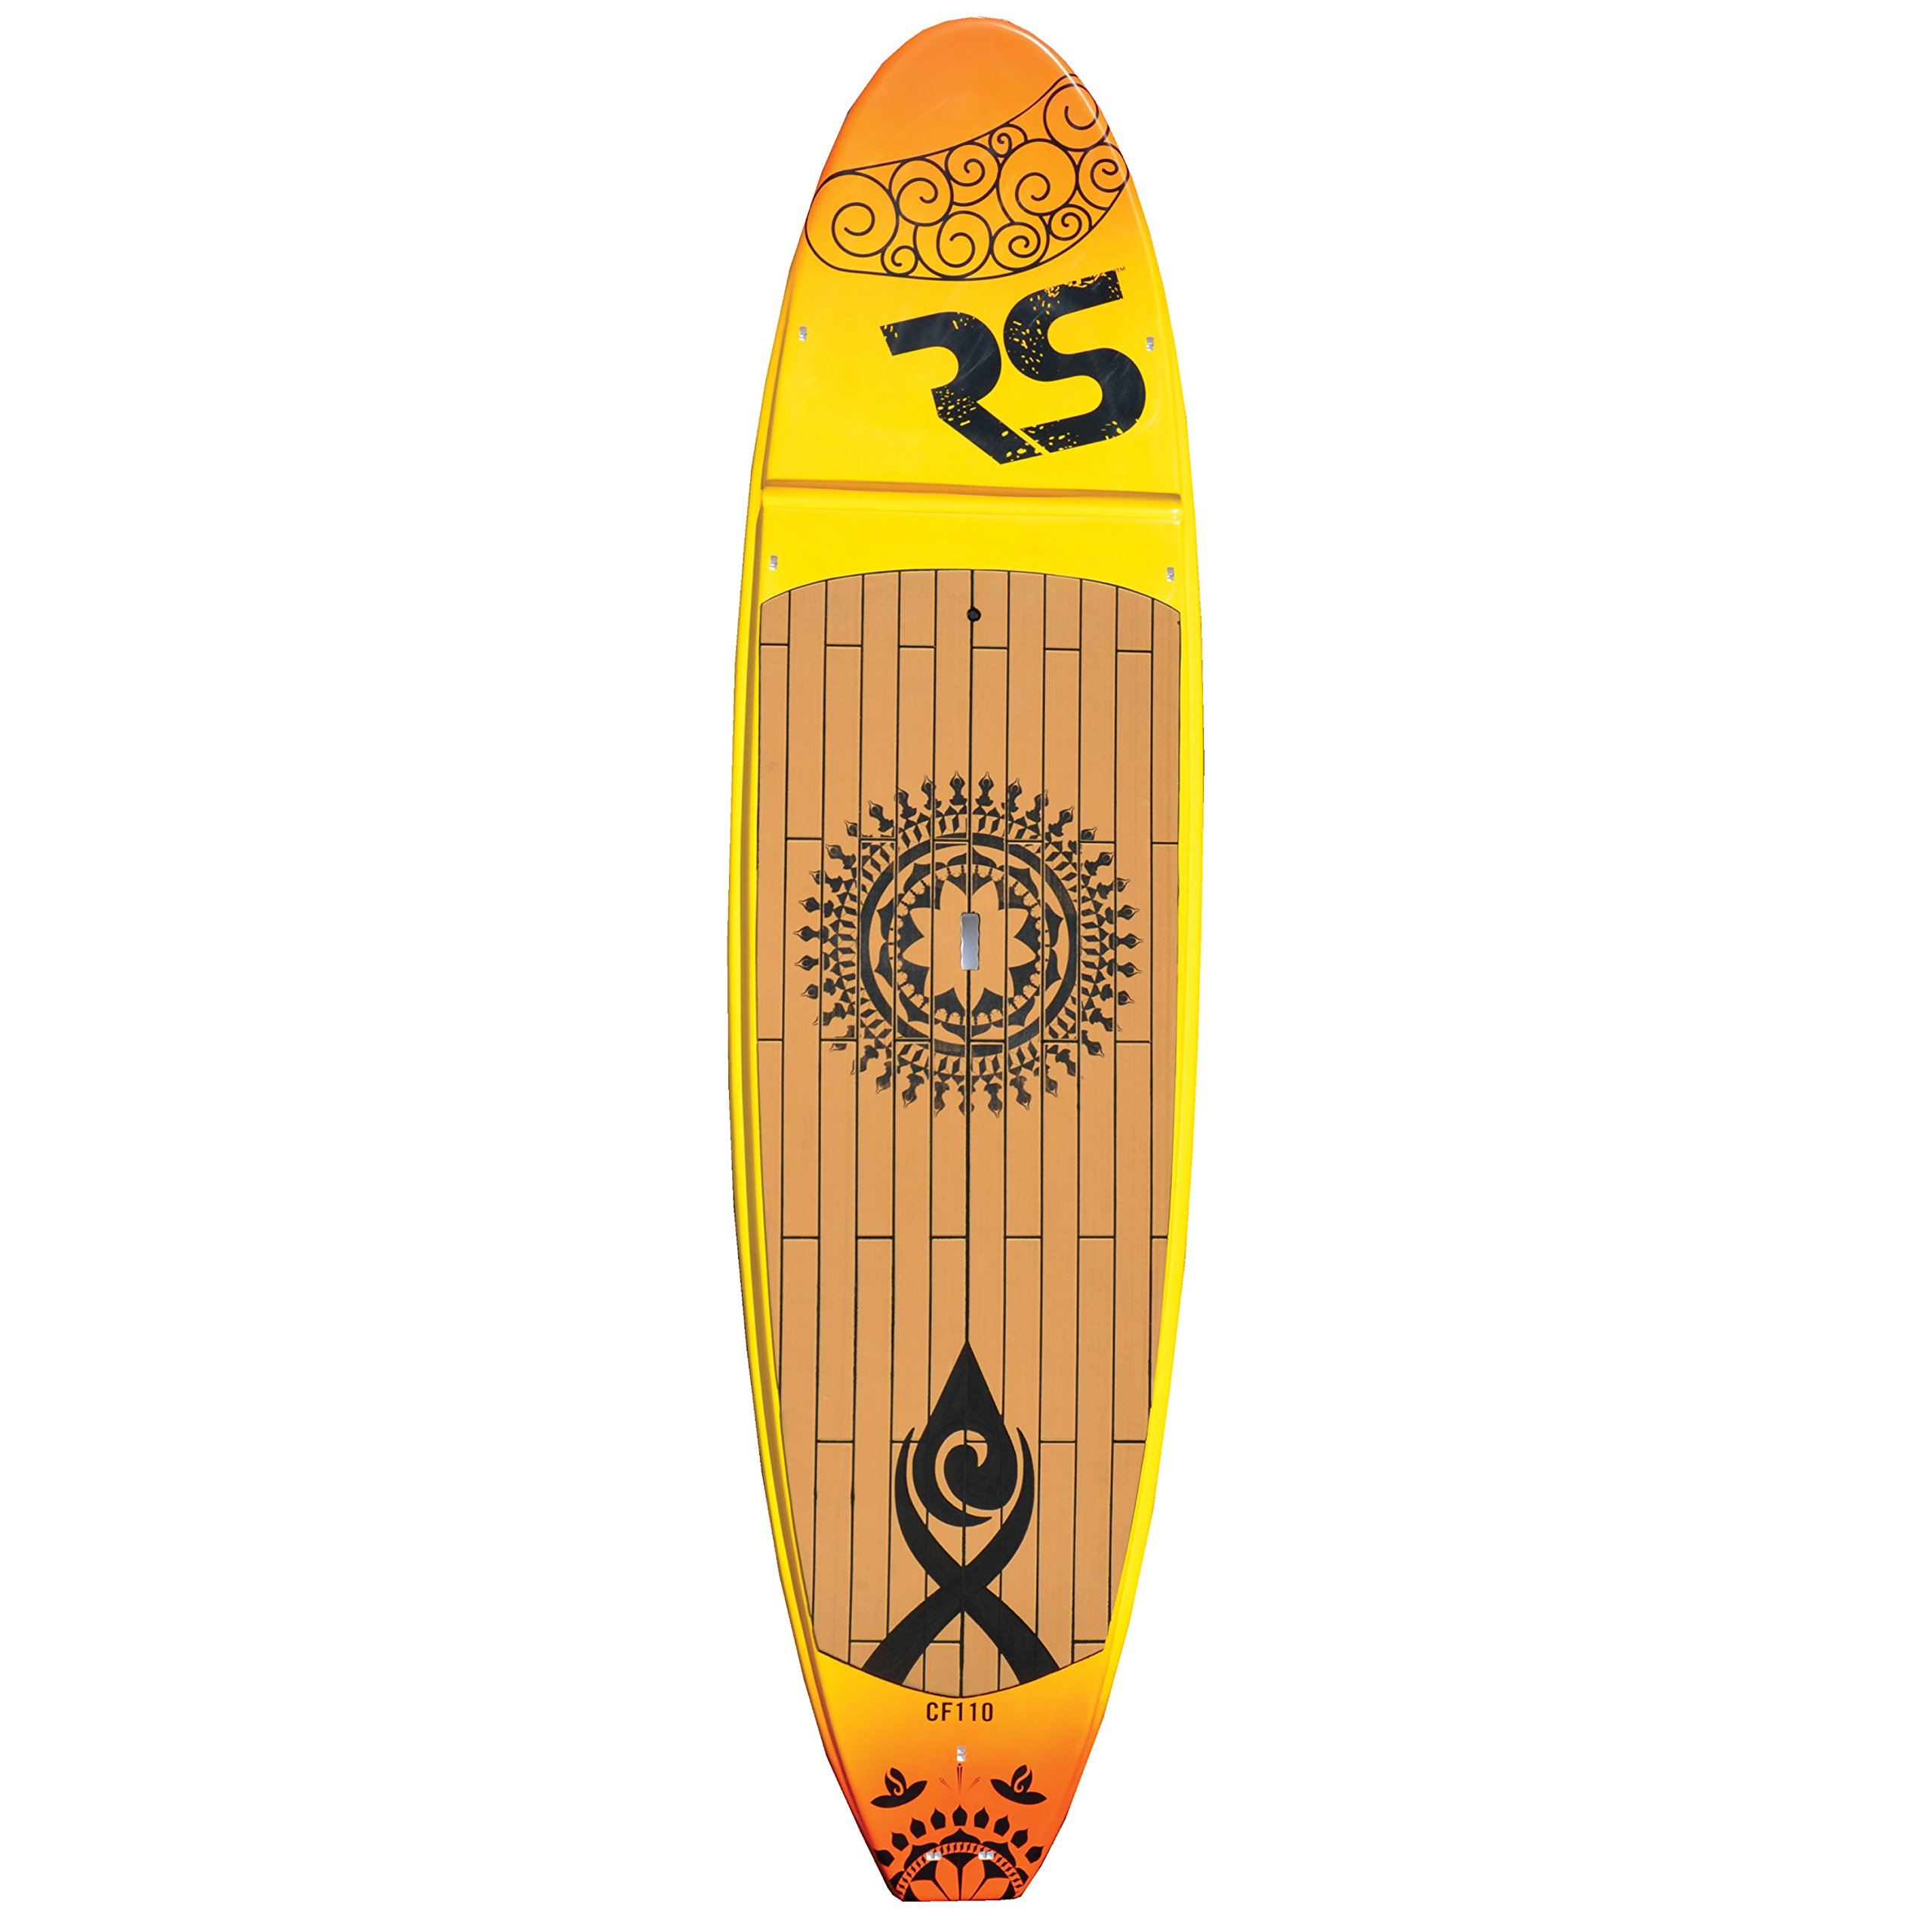 RAVE 2689 Core Crossfit SUP for Yoga & X-Training - Sunset Gold, 11' by Rave